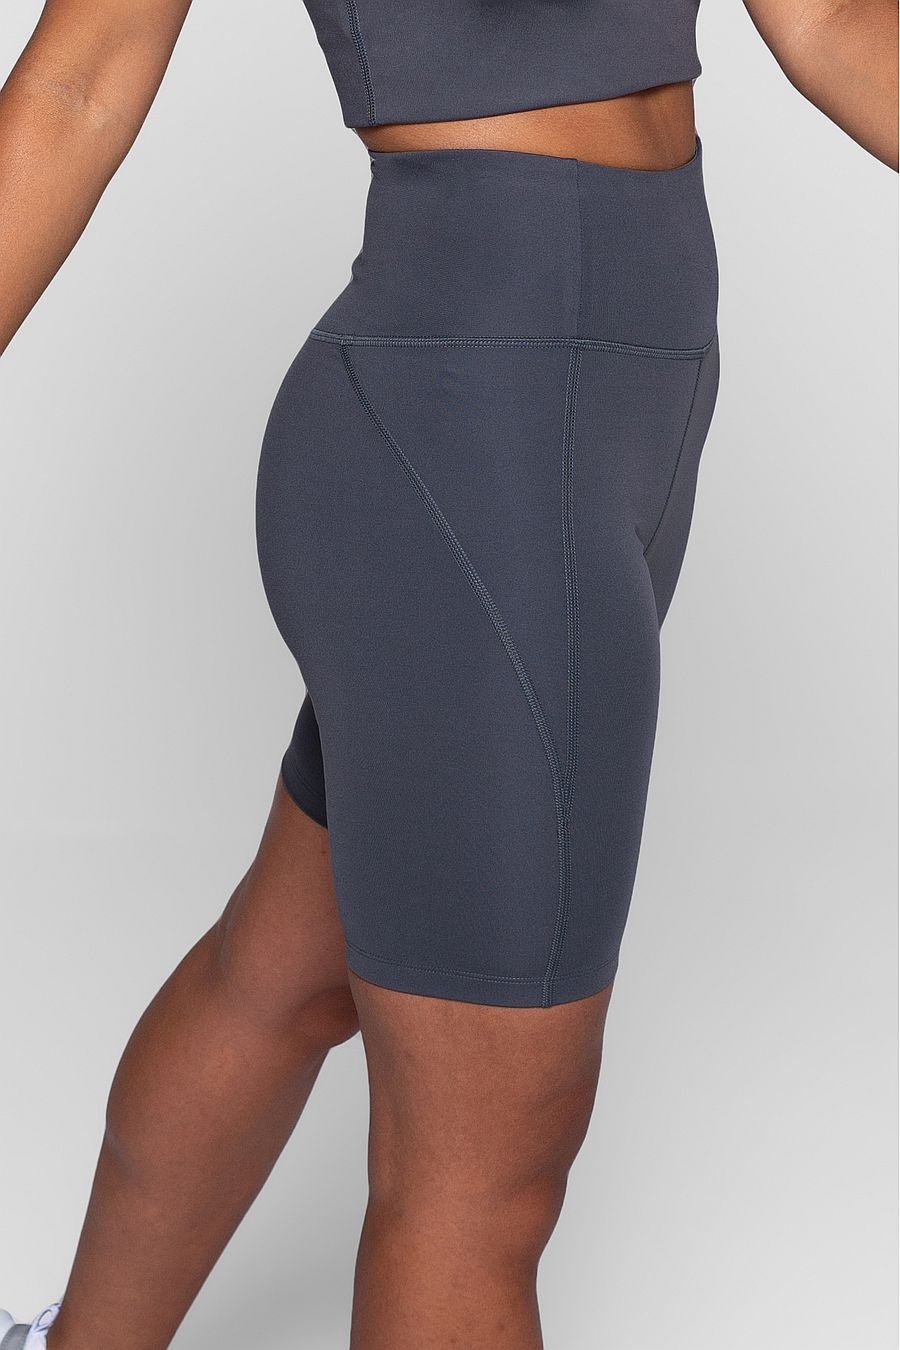 Girlfriend Collective Smoke High Rise Bike Short